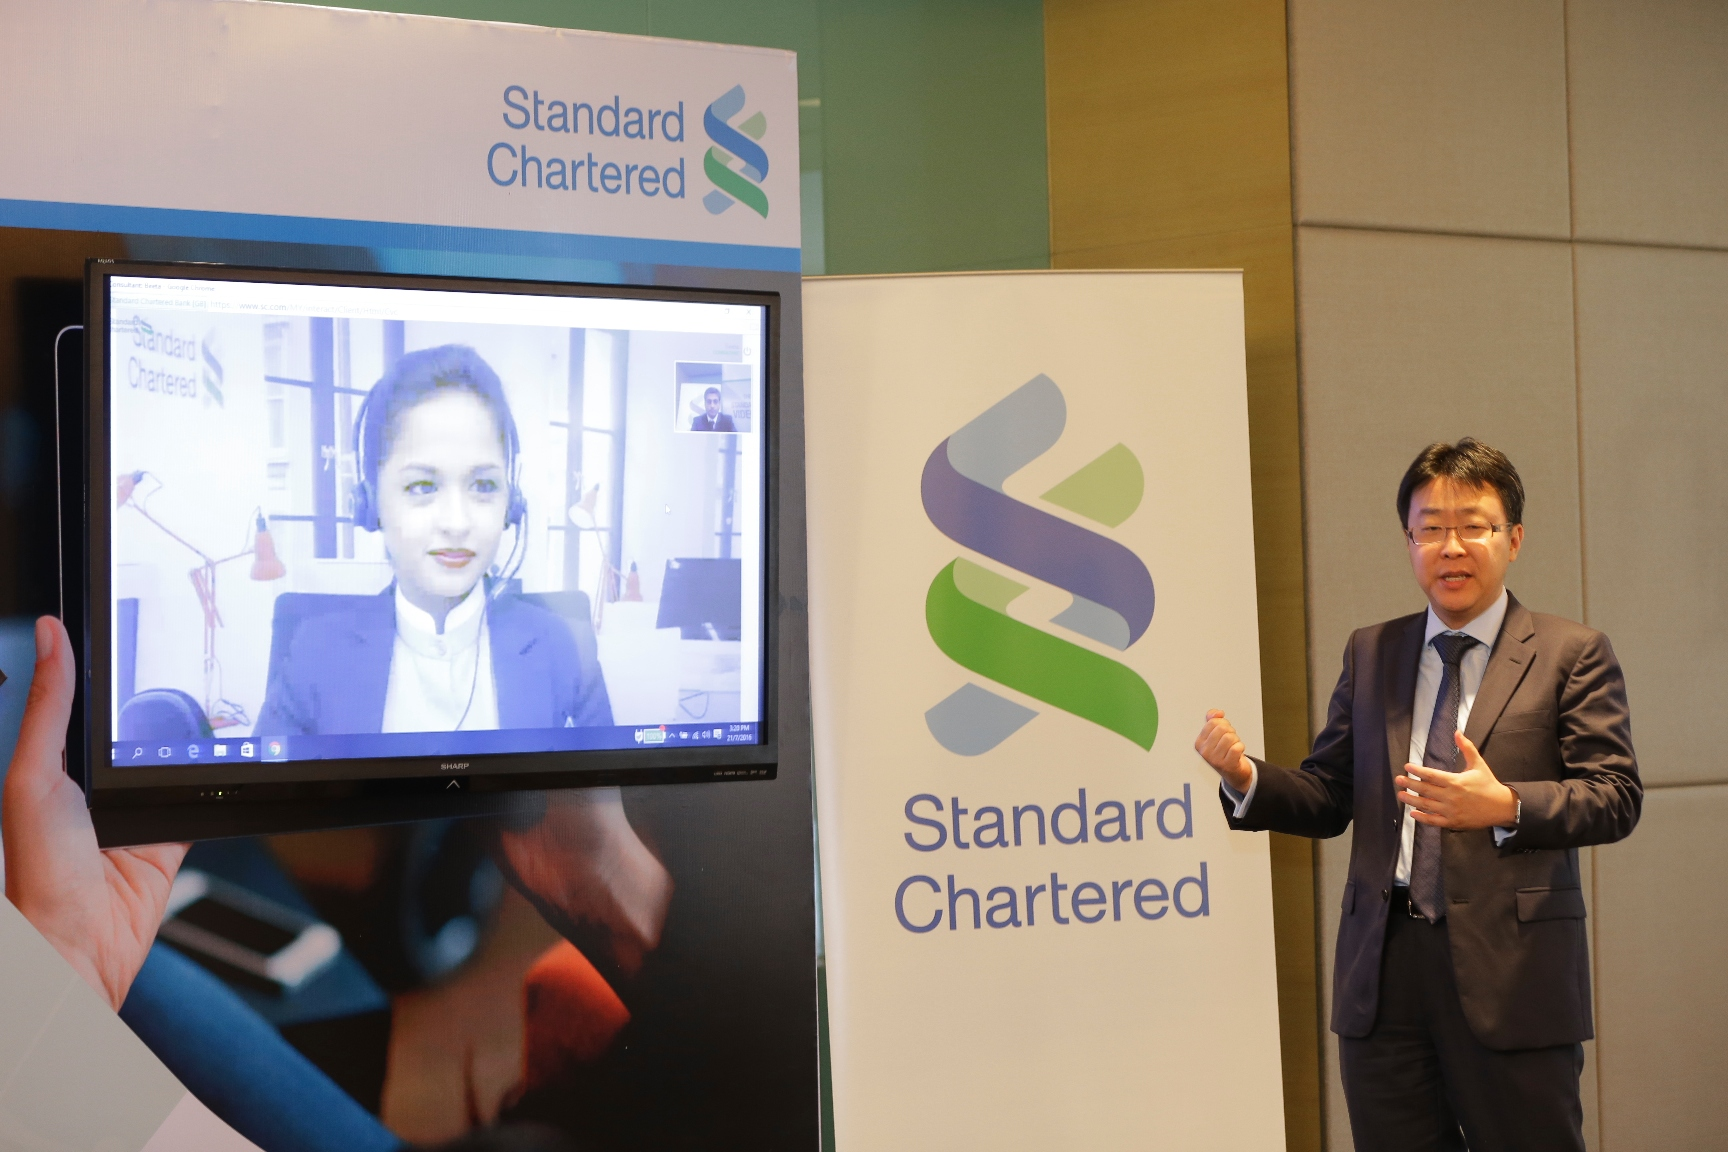 introduction standard chartered bank Introduction standard chartered bank (scb) has been established for over 140 years it was founded from two banks-the standard bank of british south africa, founded in 1853 and the chartered bank of india, australia and china founded in 1863.